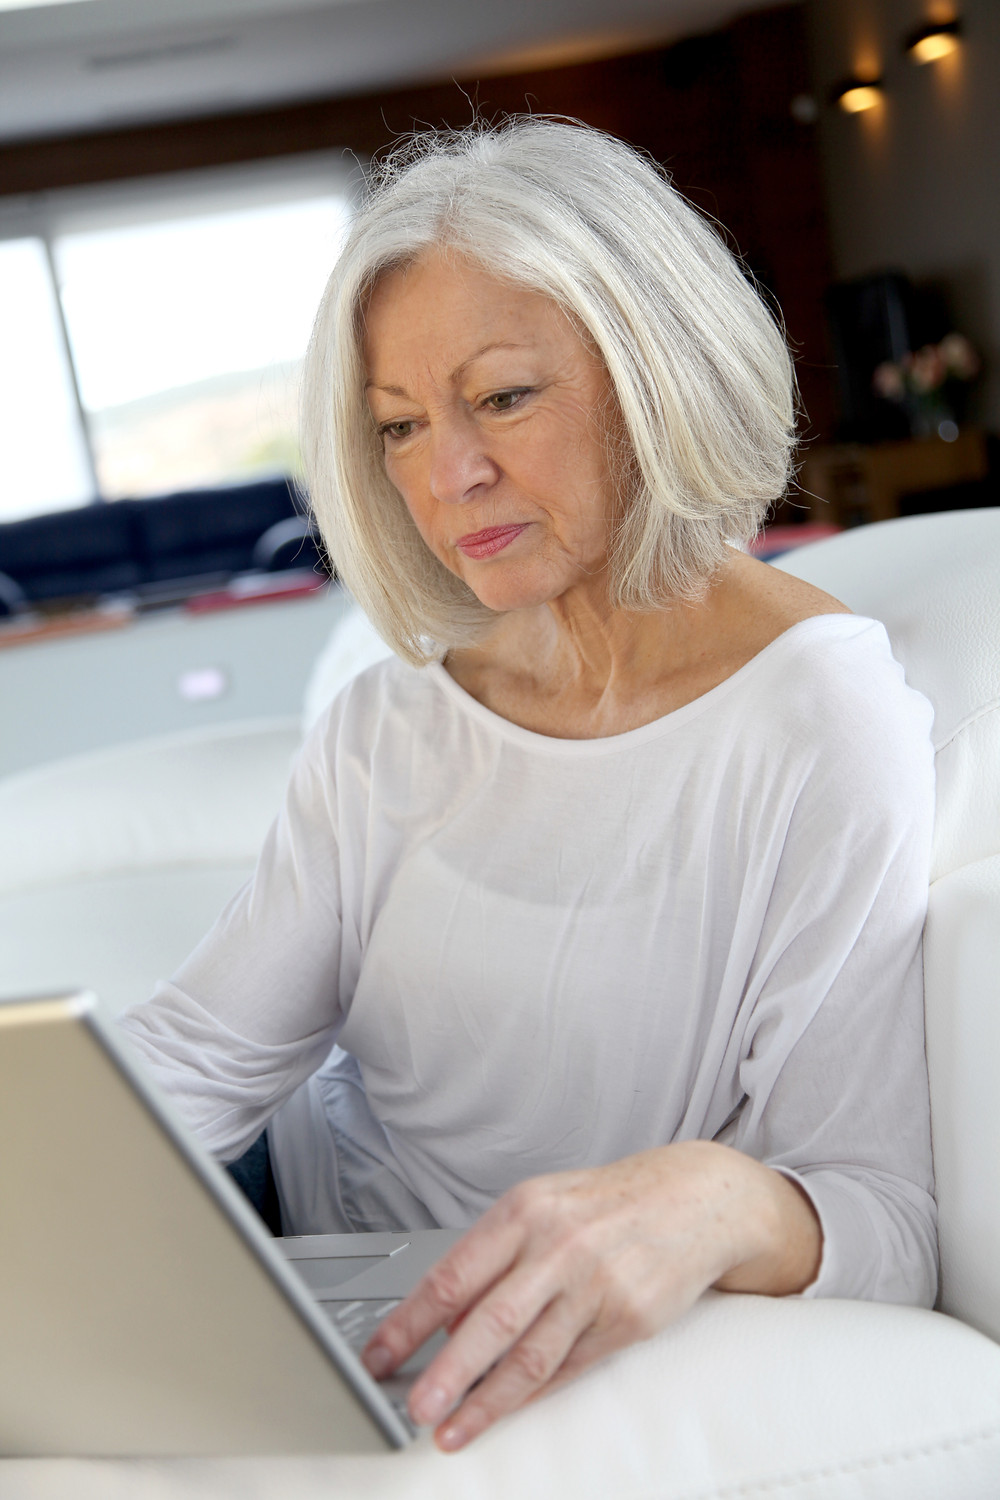 senior lady on a computer